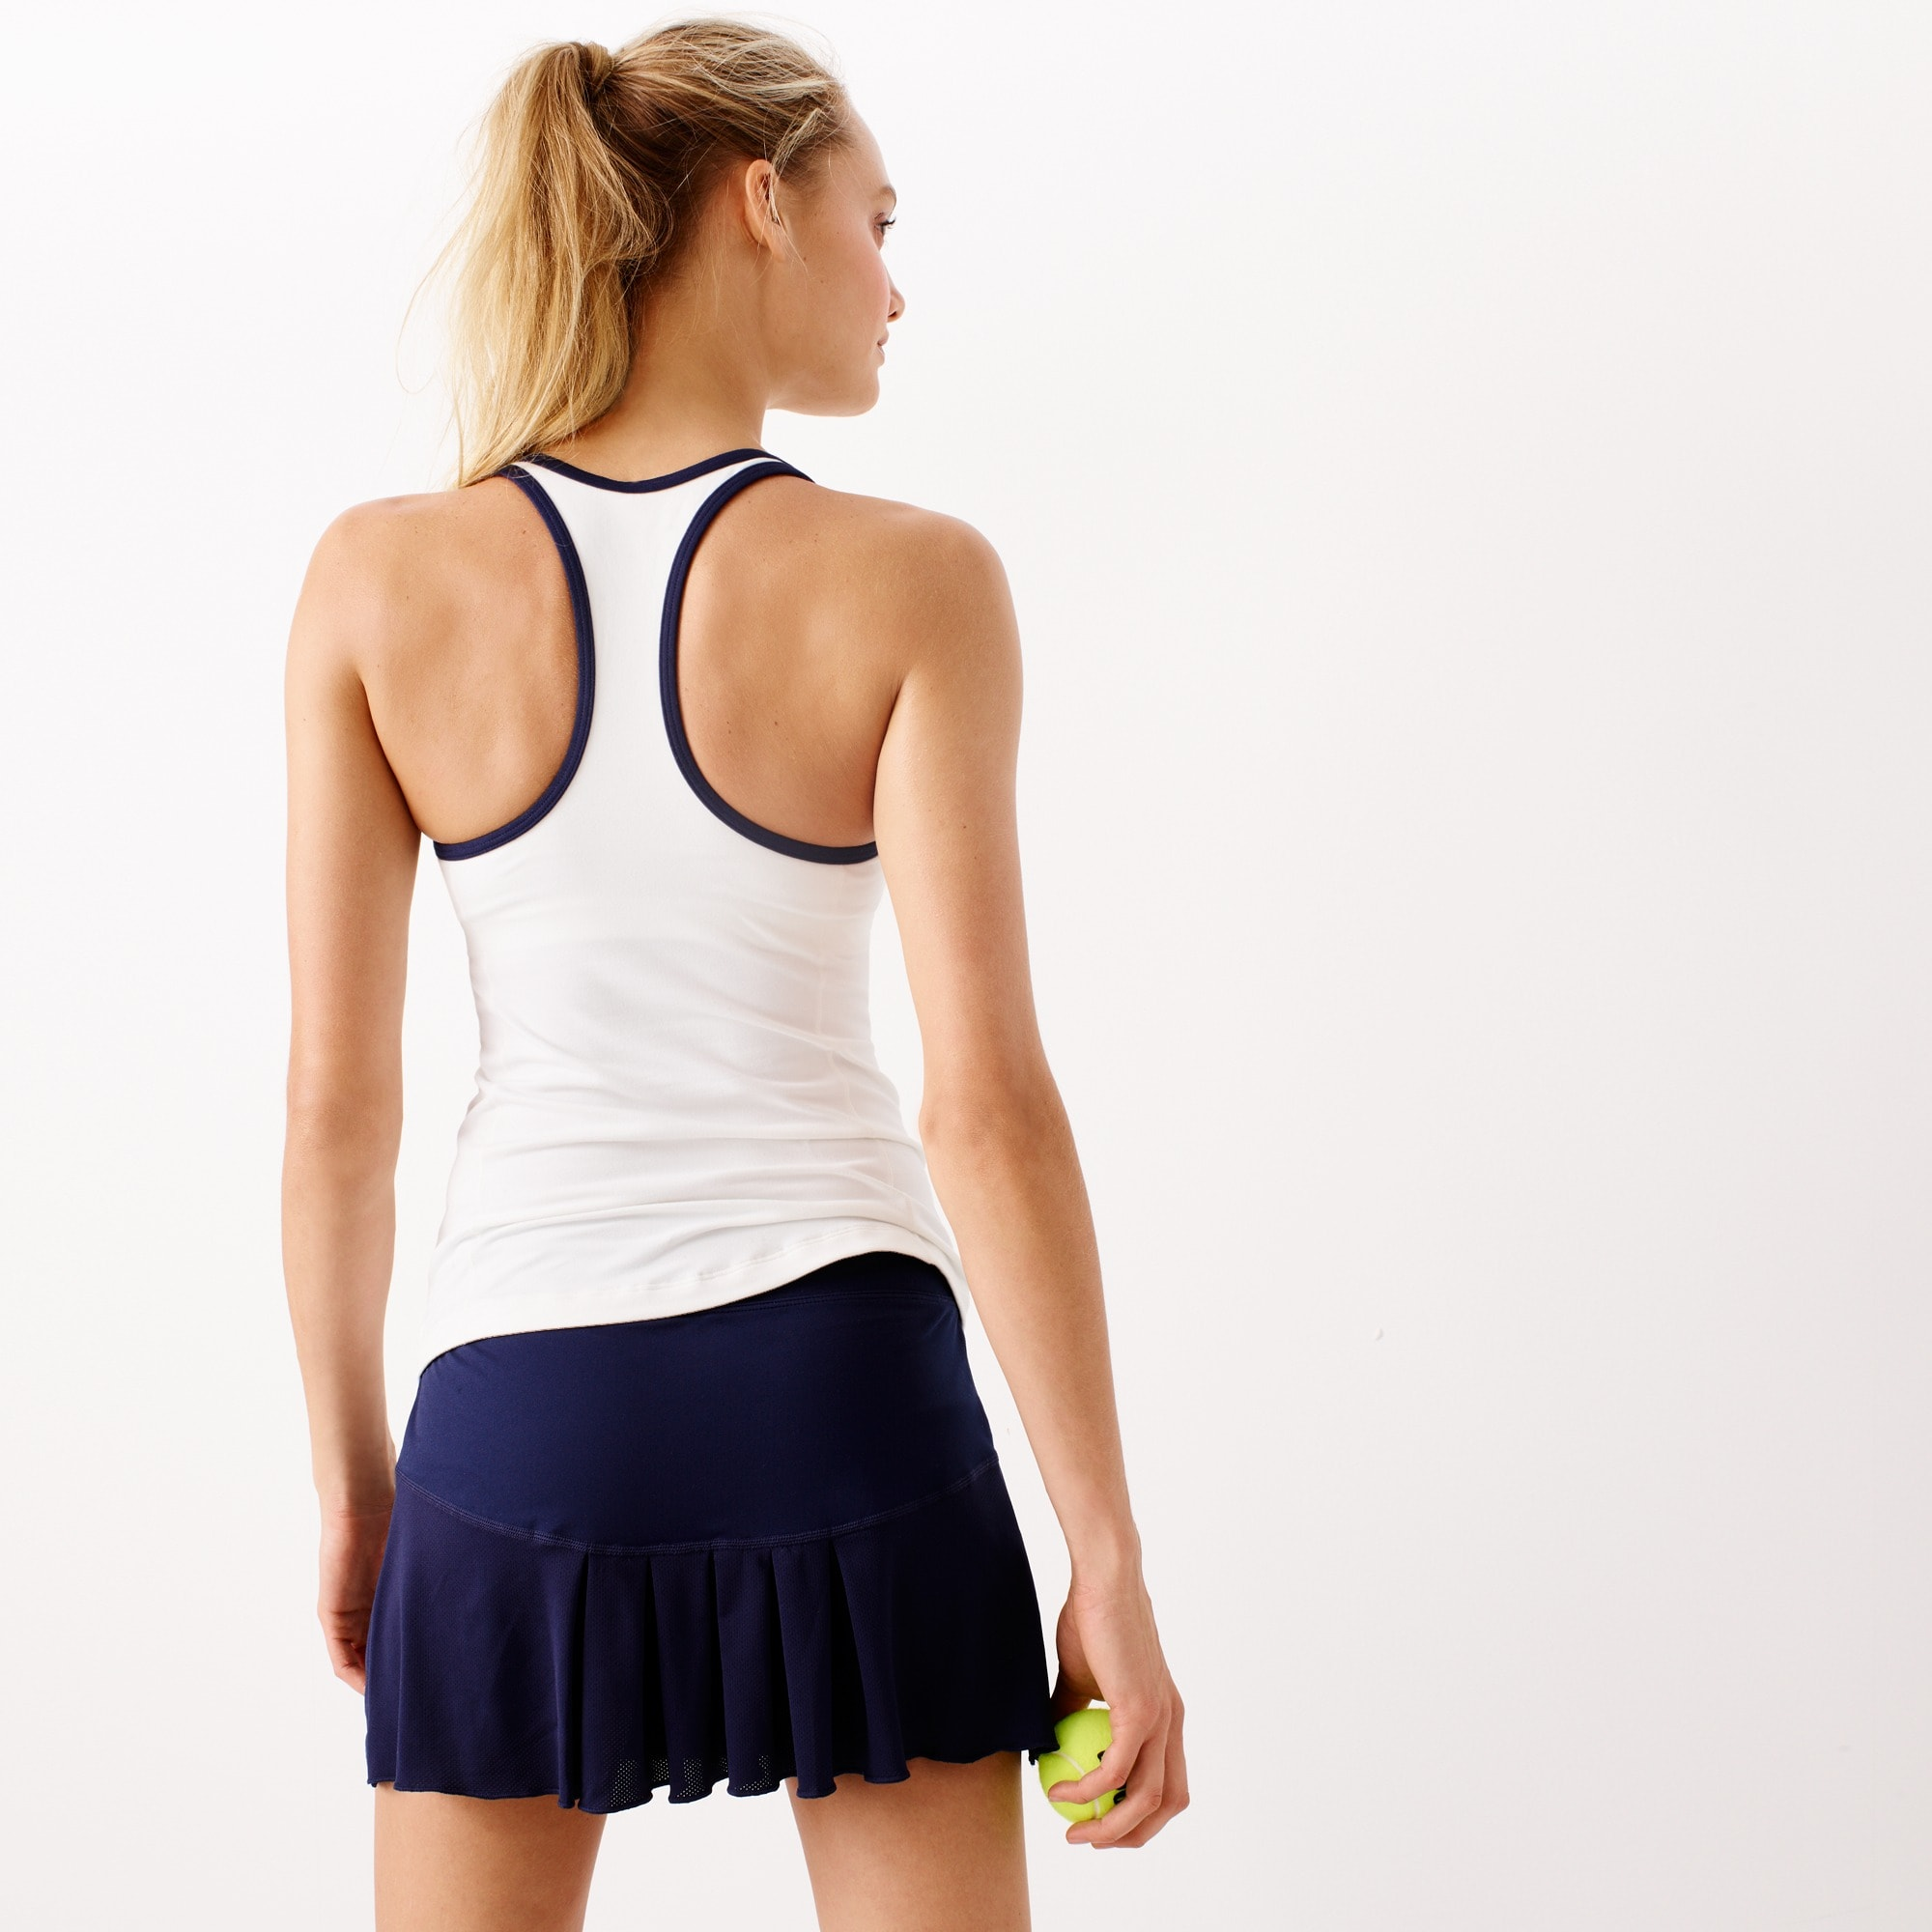 Image 3 for New Balance® for J.Crew racerback tank top with built-in bra